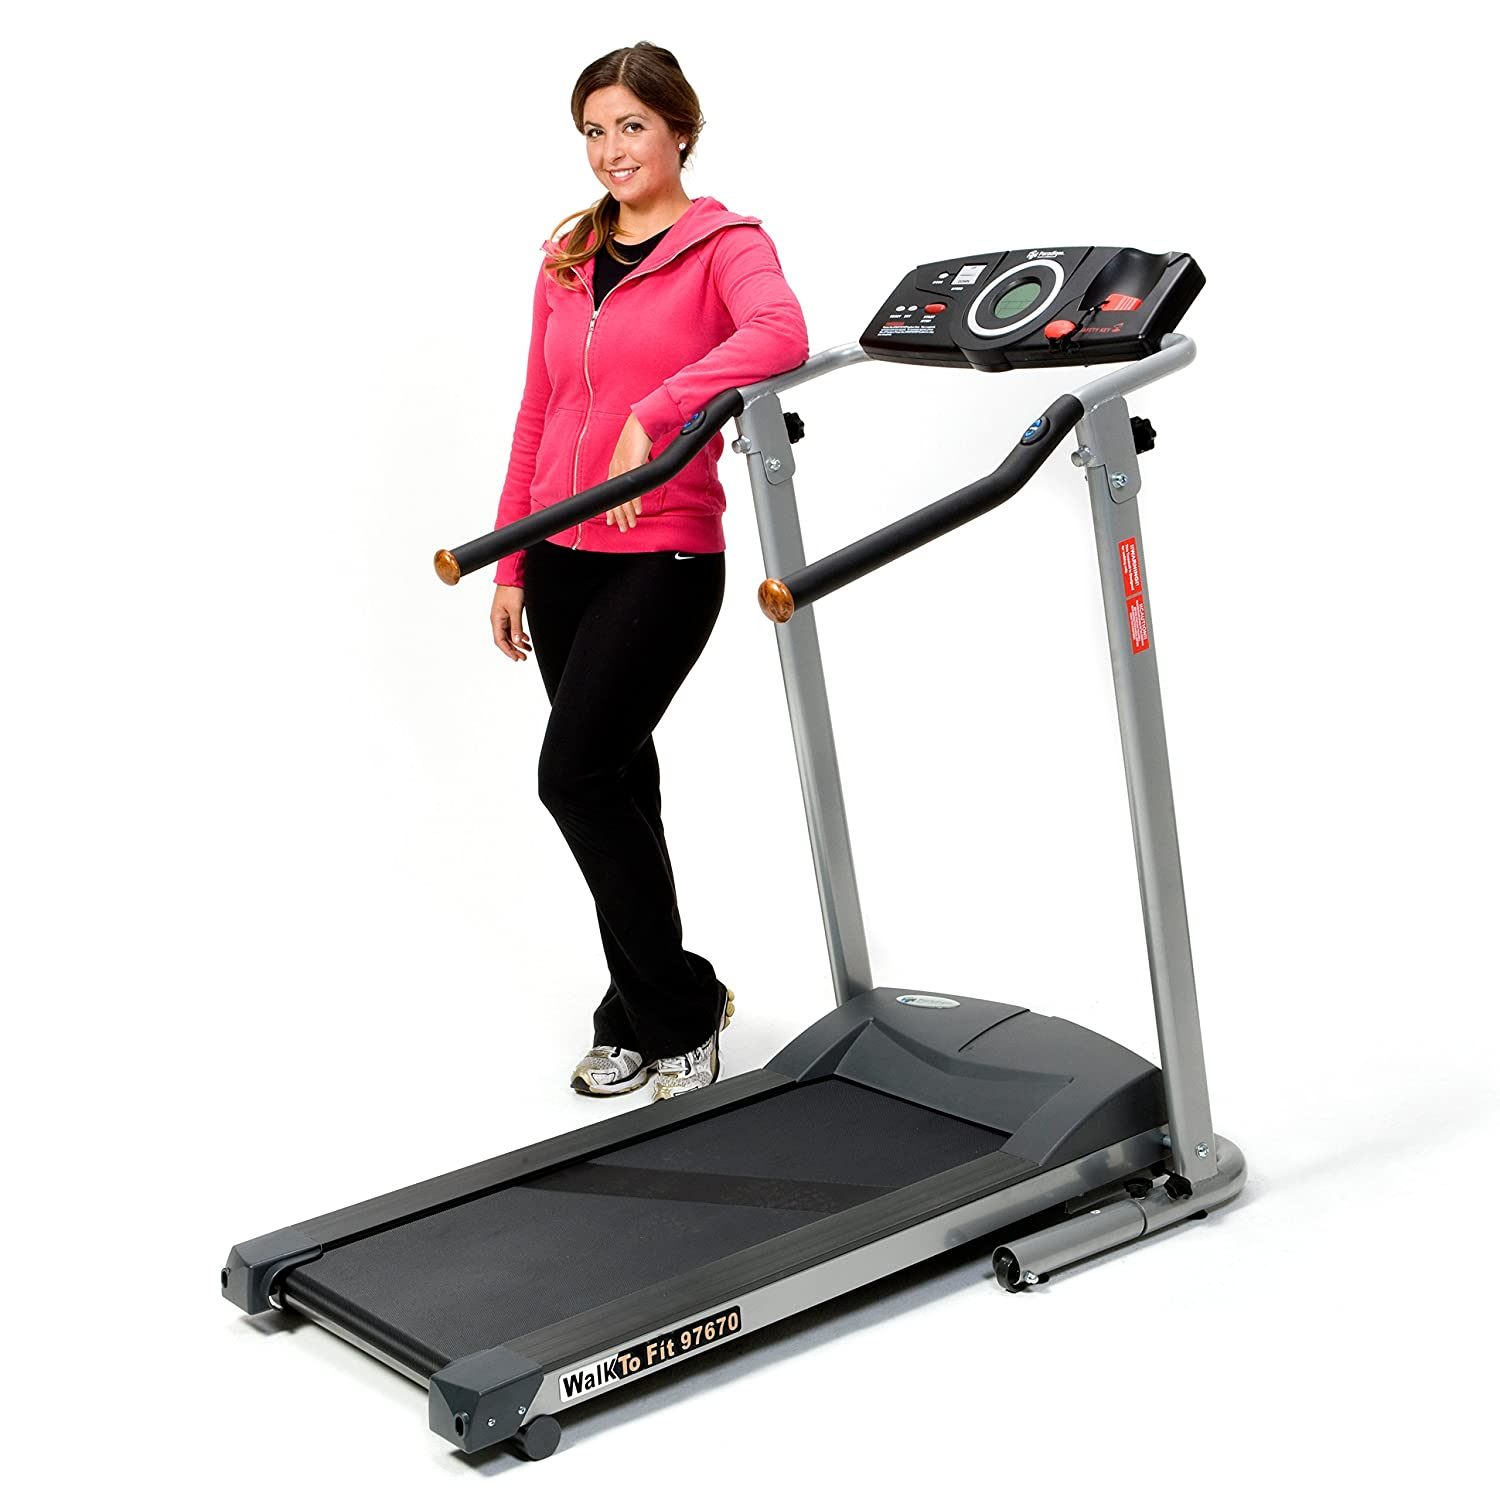 Exerpeutic Tf900 High Capacity Fitness Walking Electric Treadmill Repair Short Circuit 350 Lbs Exercise Treadmills Sports Outdoors